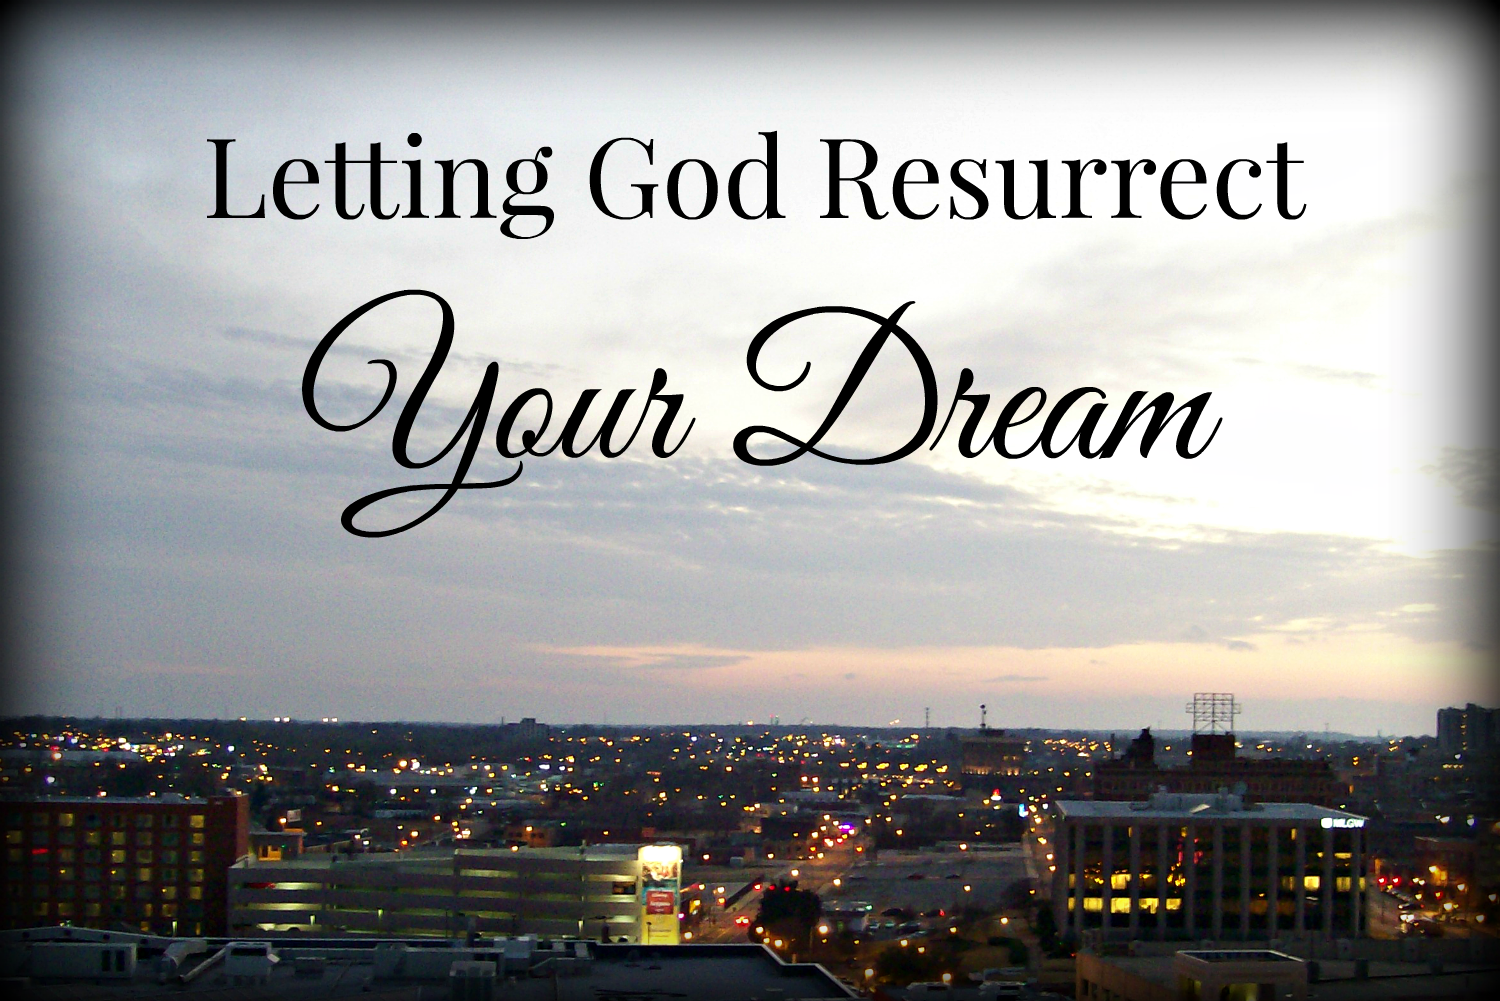 http://katyavalerajewelry.blogspot.com/2014/04/letting-god-resurrect-your-dream.html